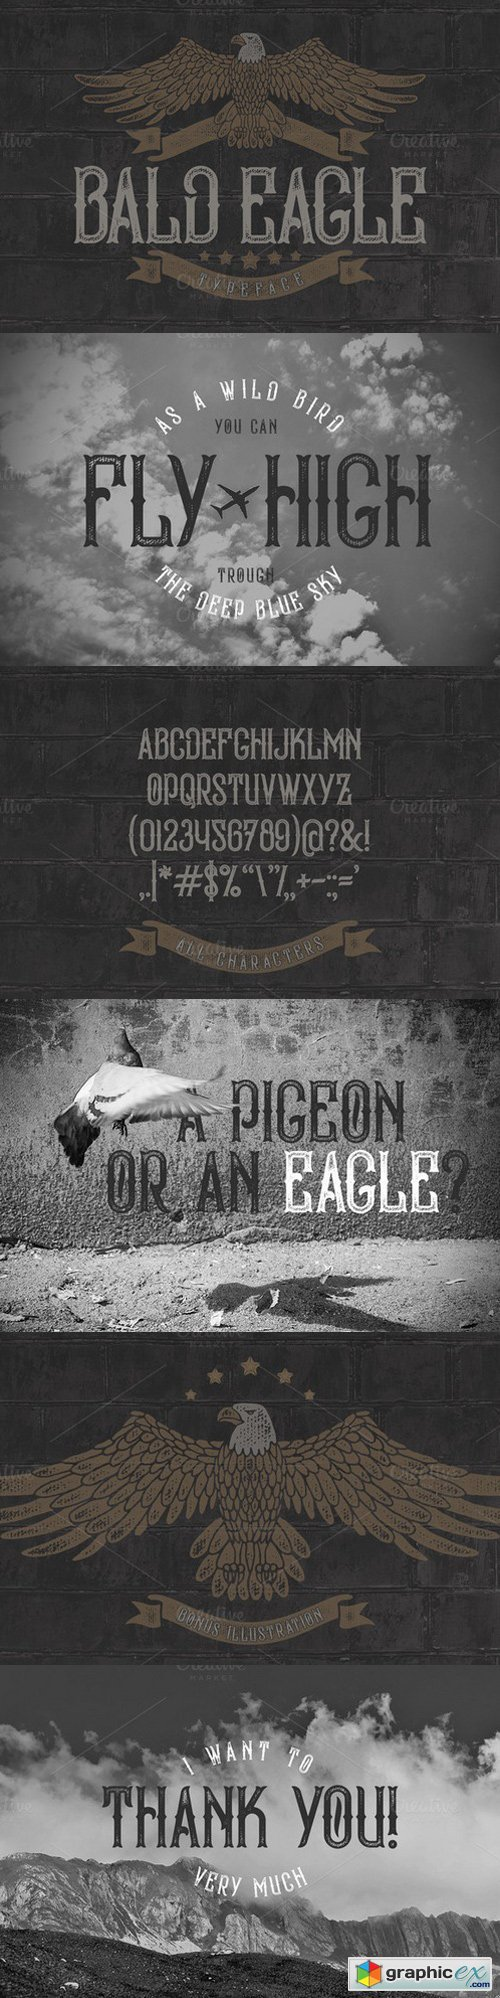 Bald Eagle Typeface